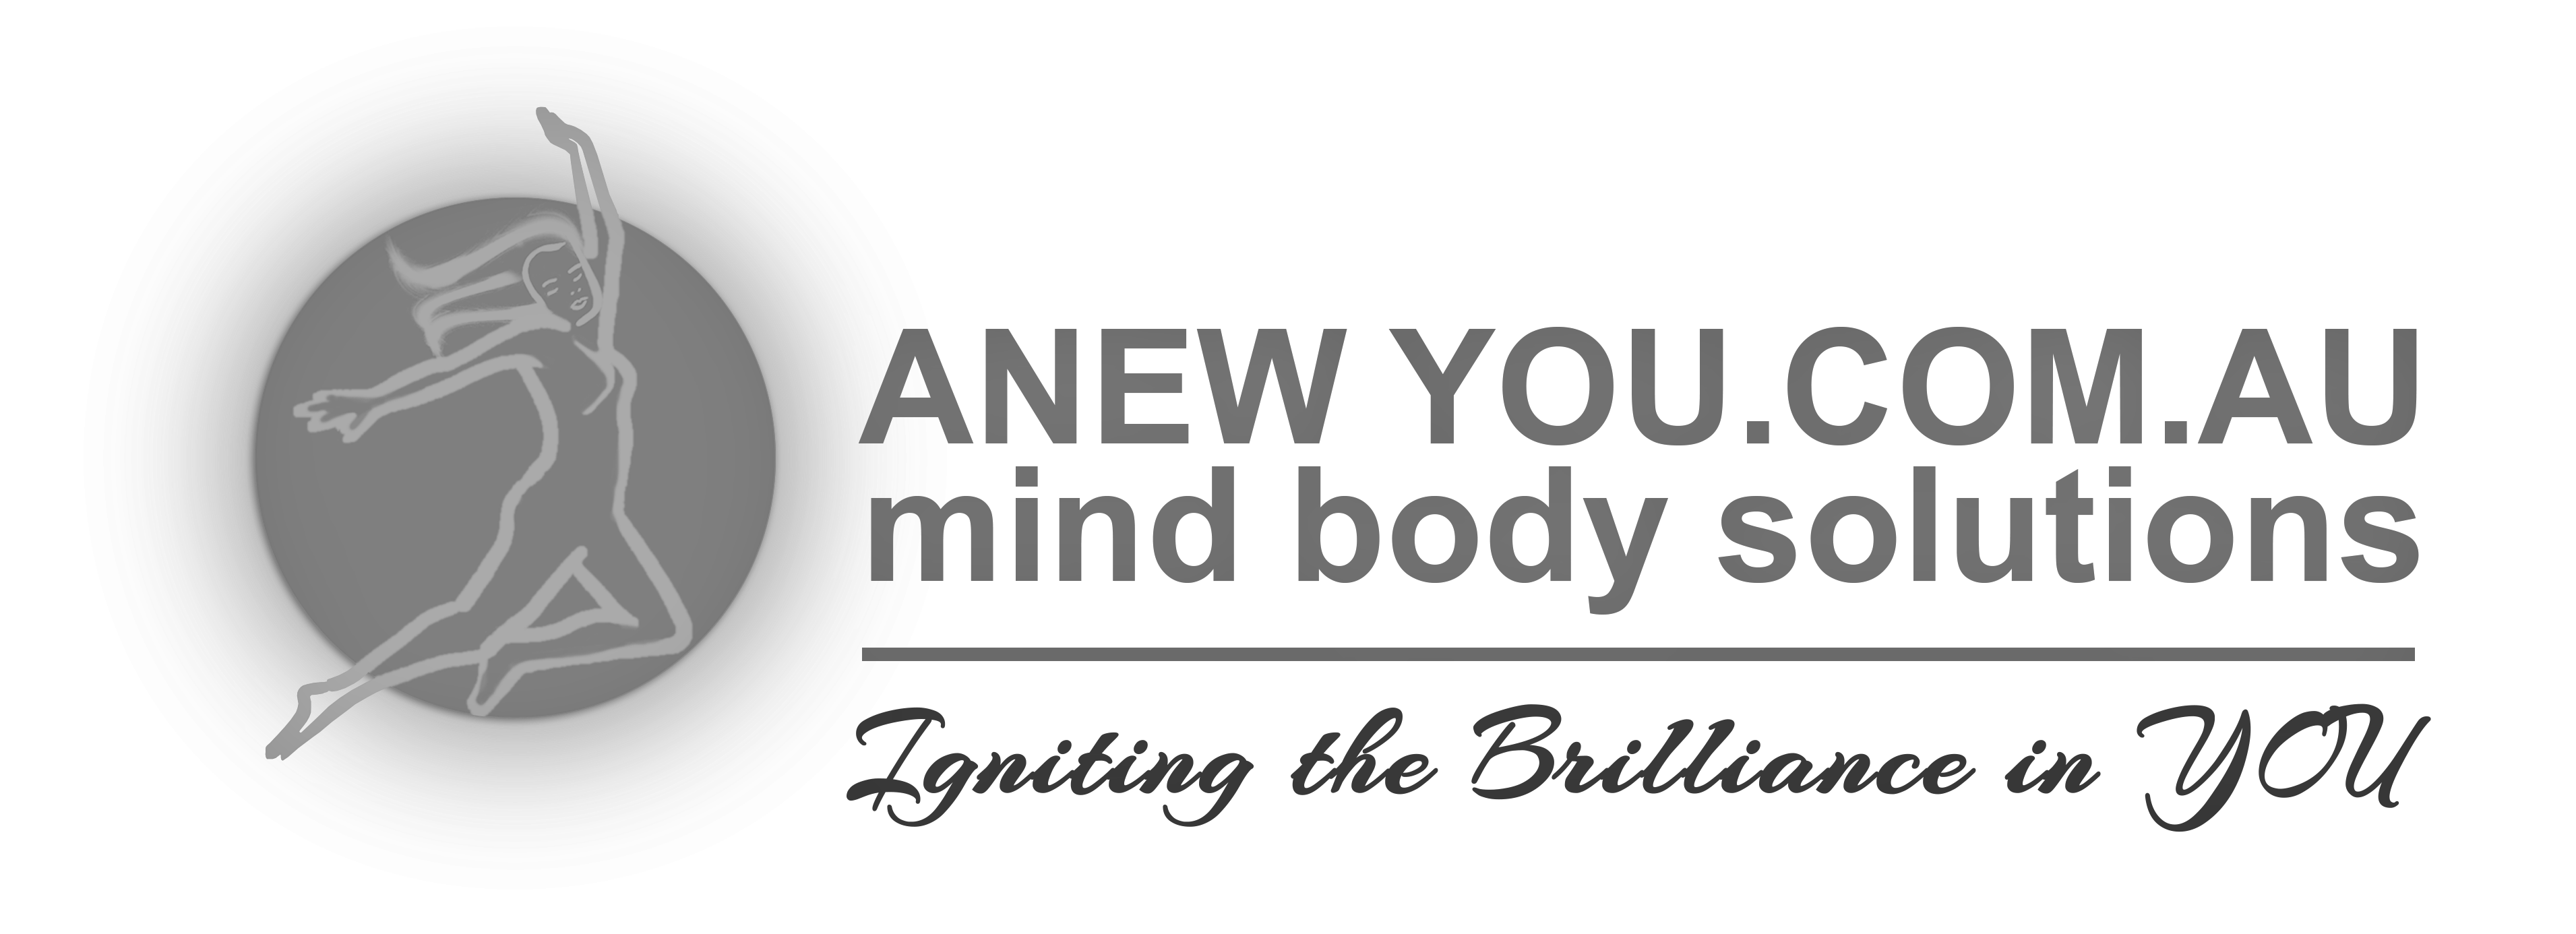 ANEW YOU MIND BODY SOLUTIONS